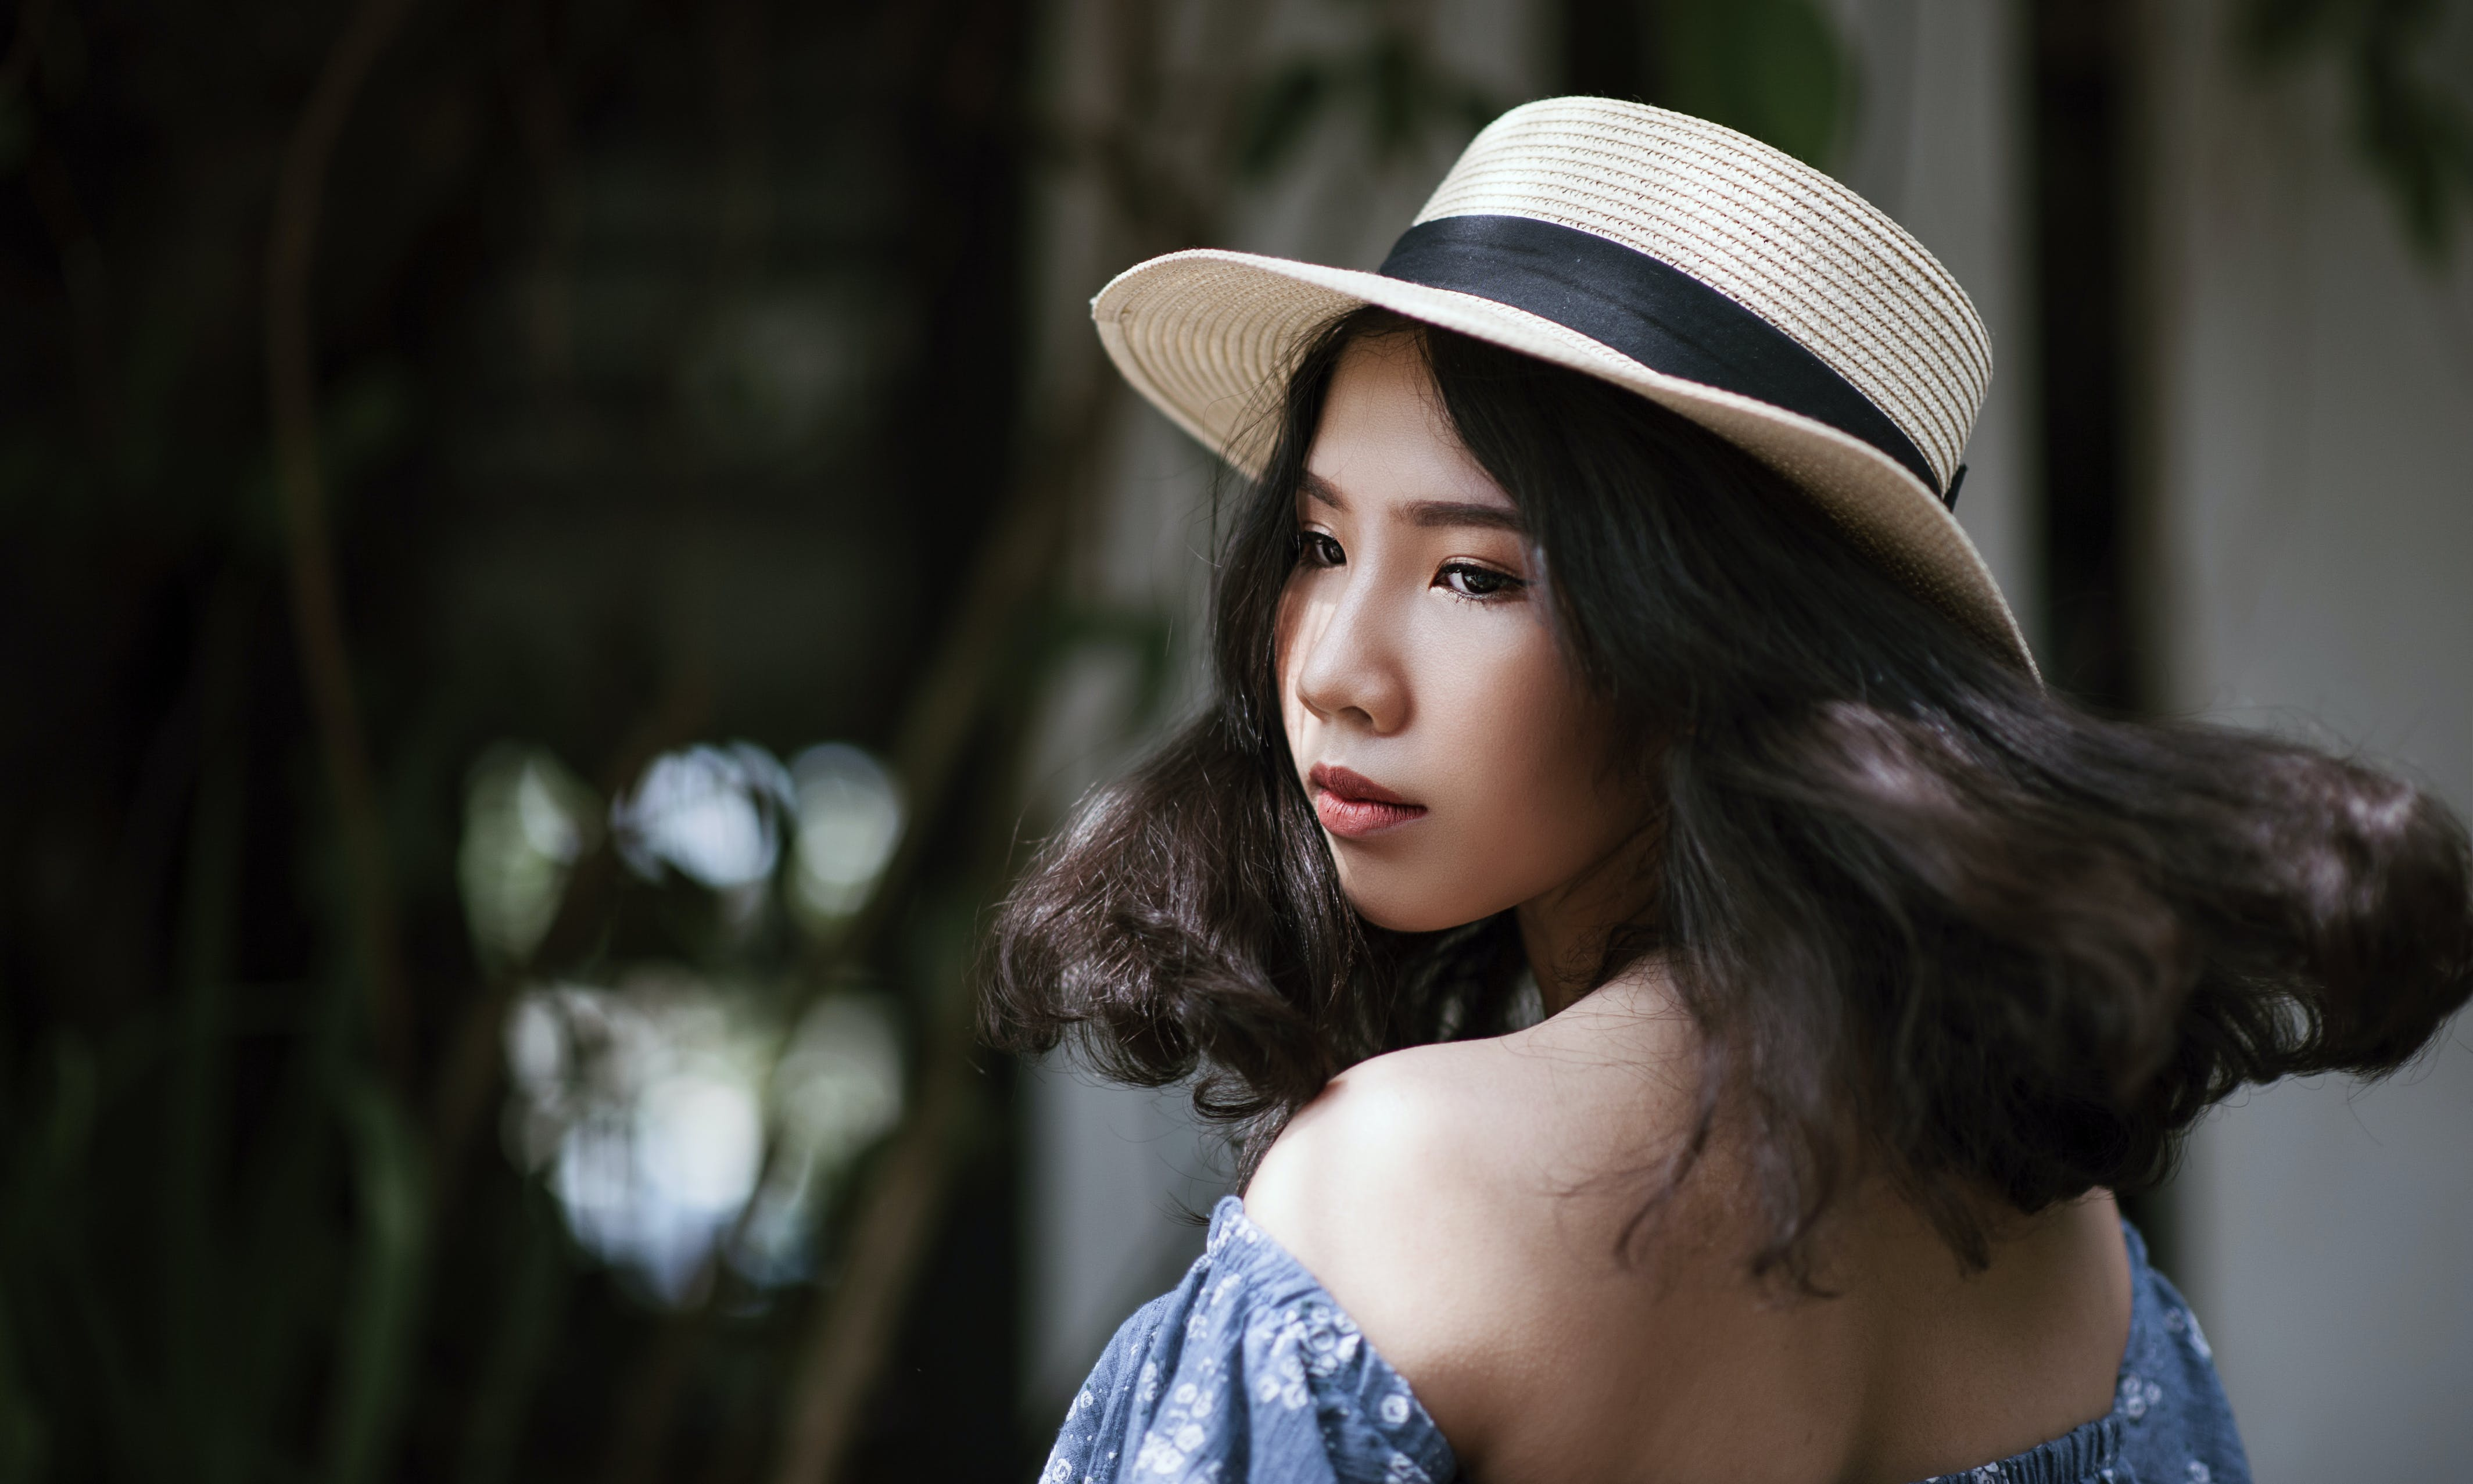 Woman Wearing Fedora Hat and Off-shoulder Blouse